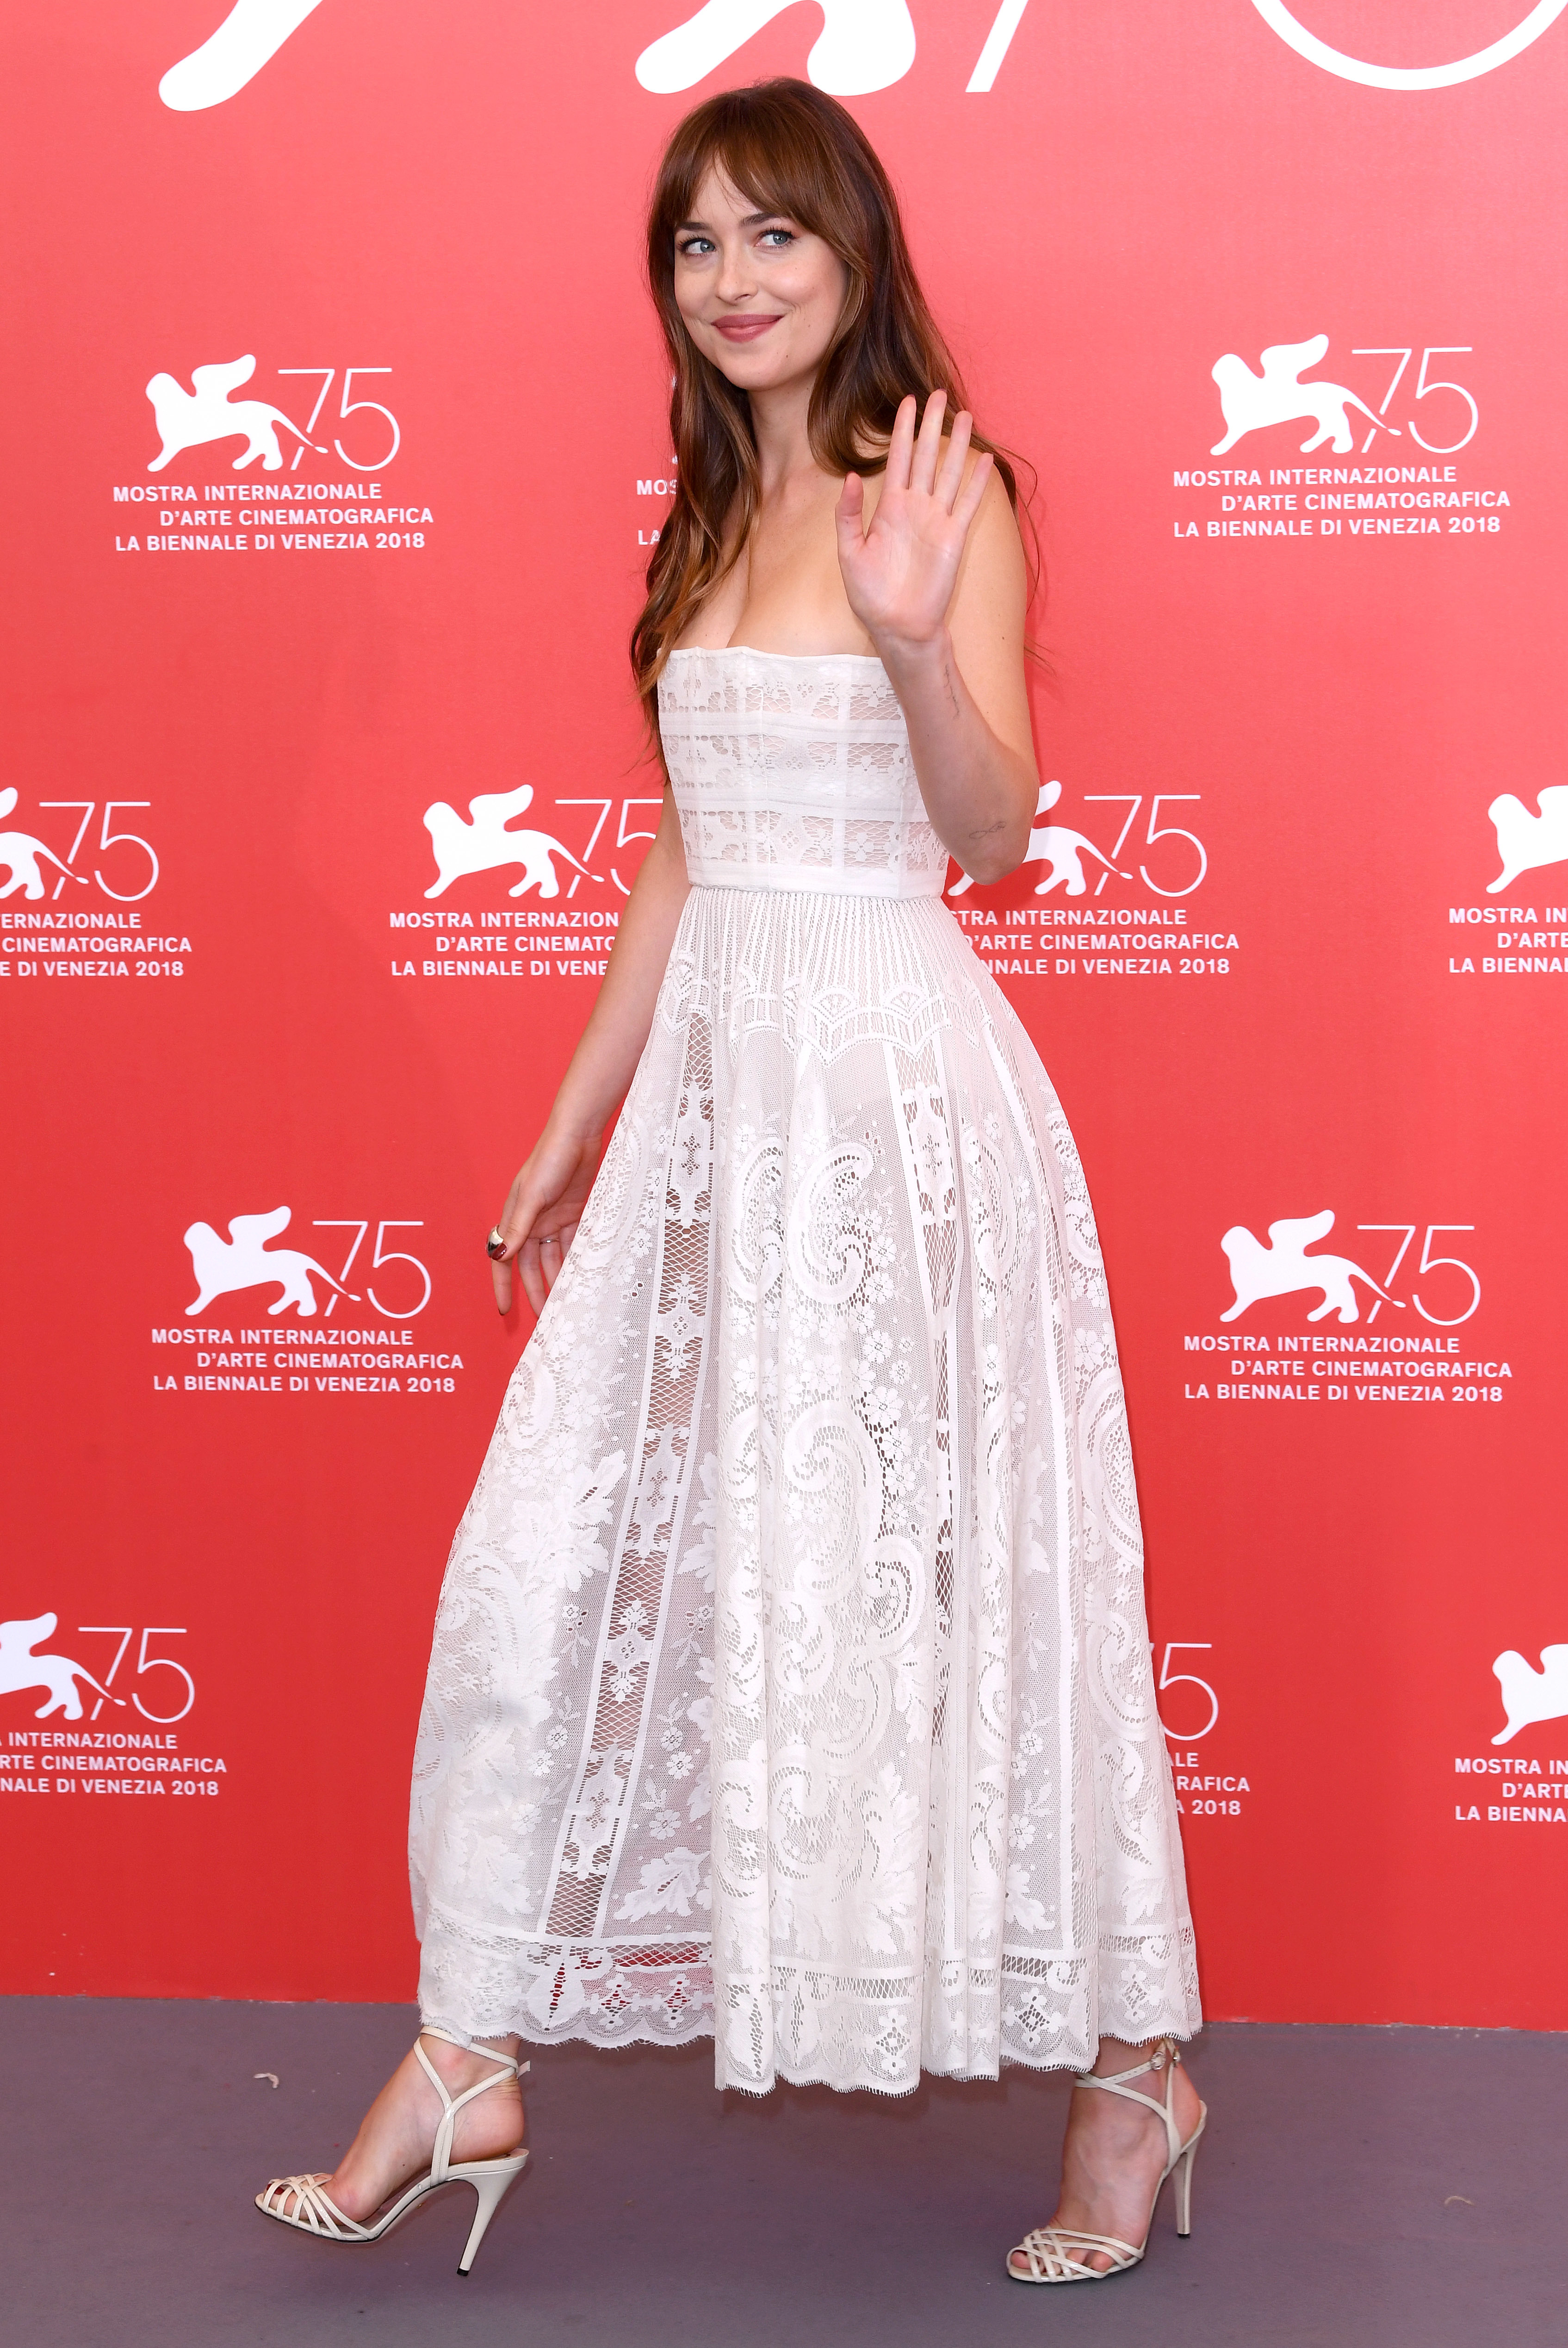 """Dakota Johnson attends a photo call for """"Suspiria"""" during the 75th Venice International Film Festival in Italy on Sept. 1, 2018."""